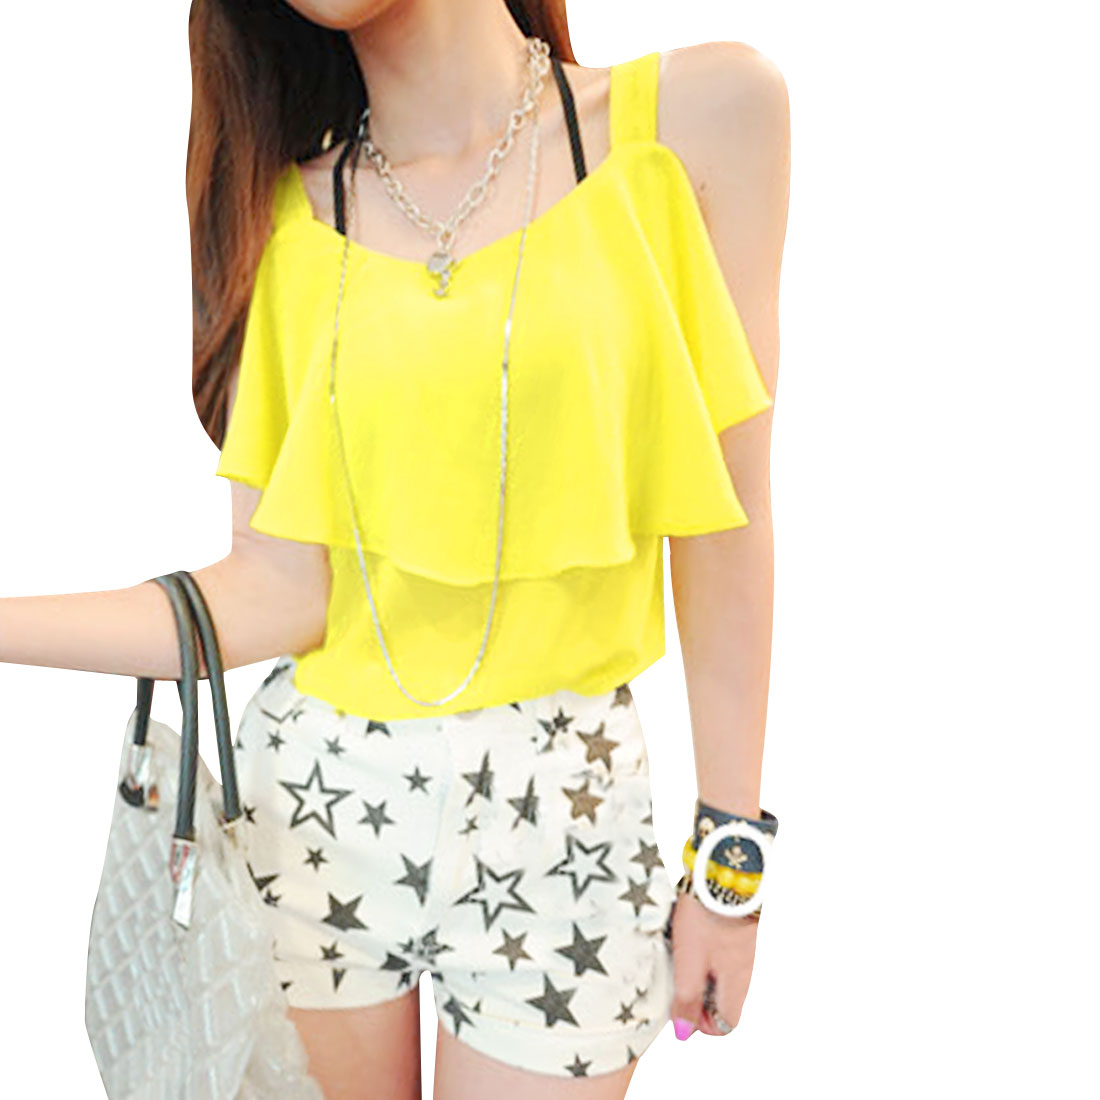 Lady Round Neck Scalloped Semi-sheer Yellow Chiffon Tank Top XS